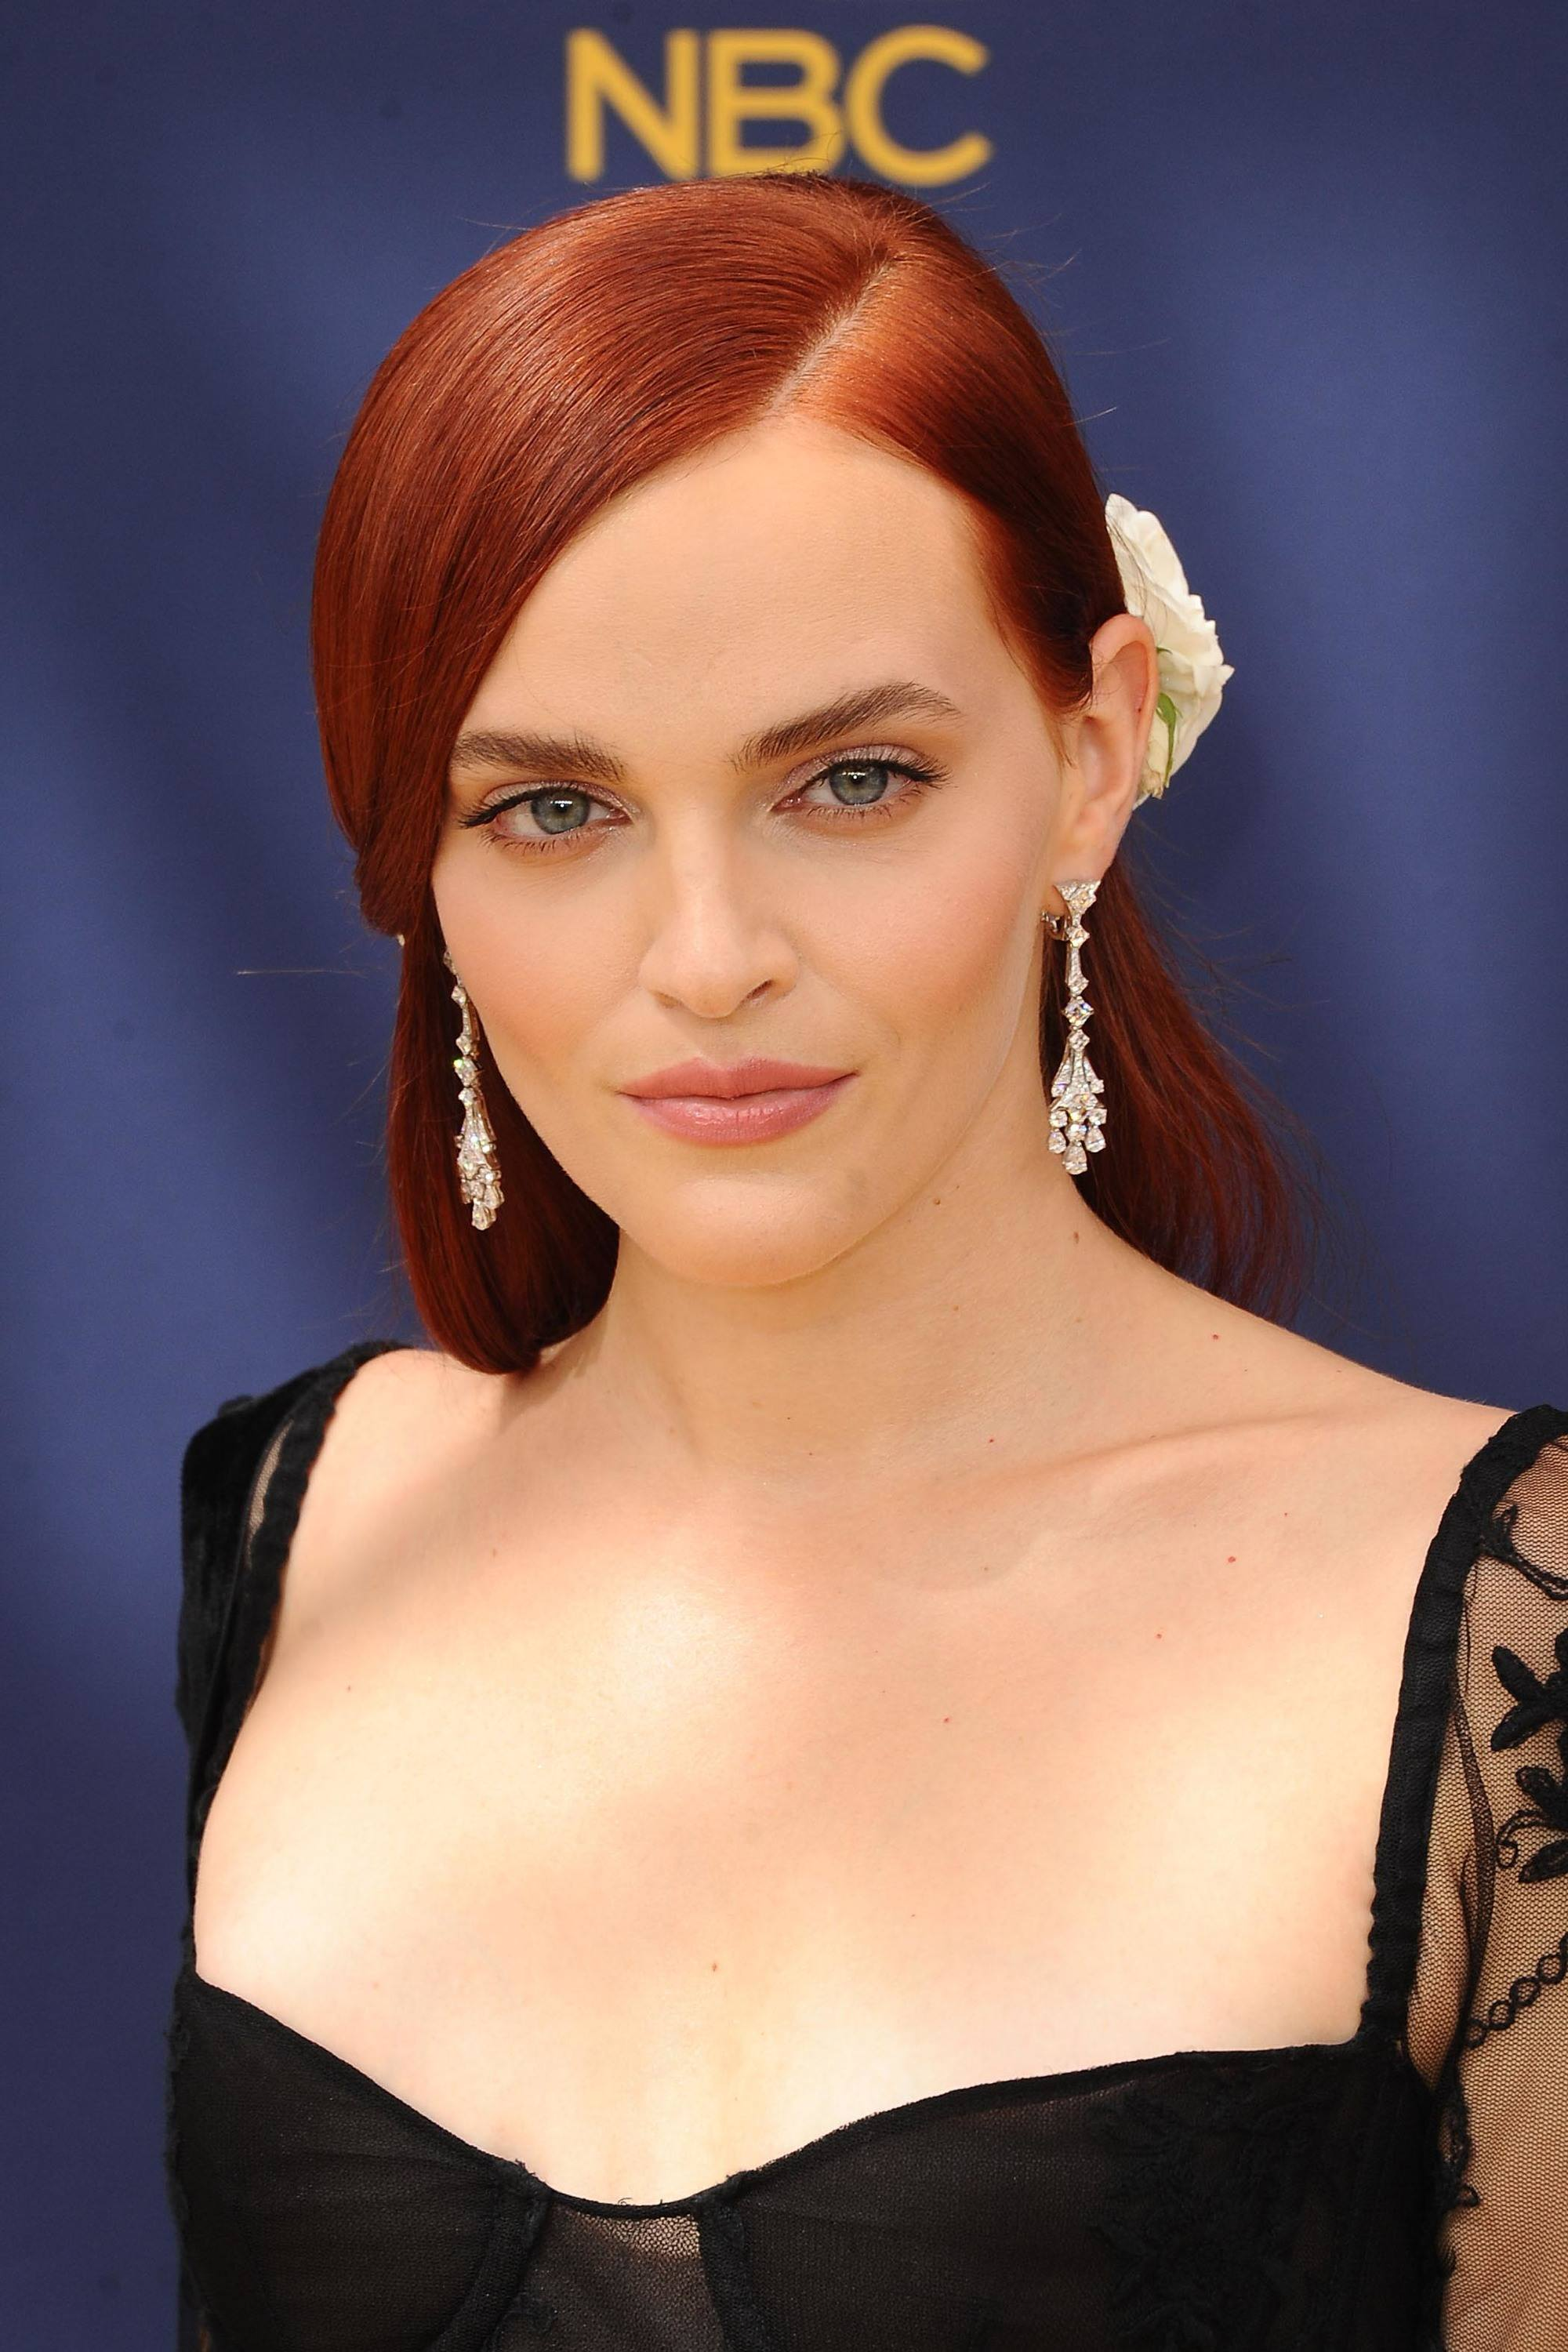 Famous redheads: Madeline Brewer with long straight dark red hair styled in a side parting with a large white flower accessory wearing a black lace dress.